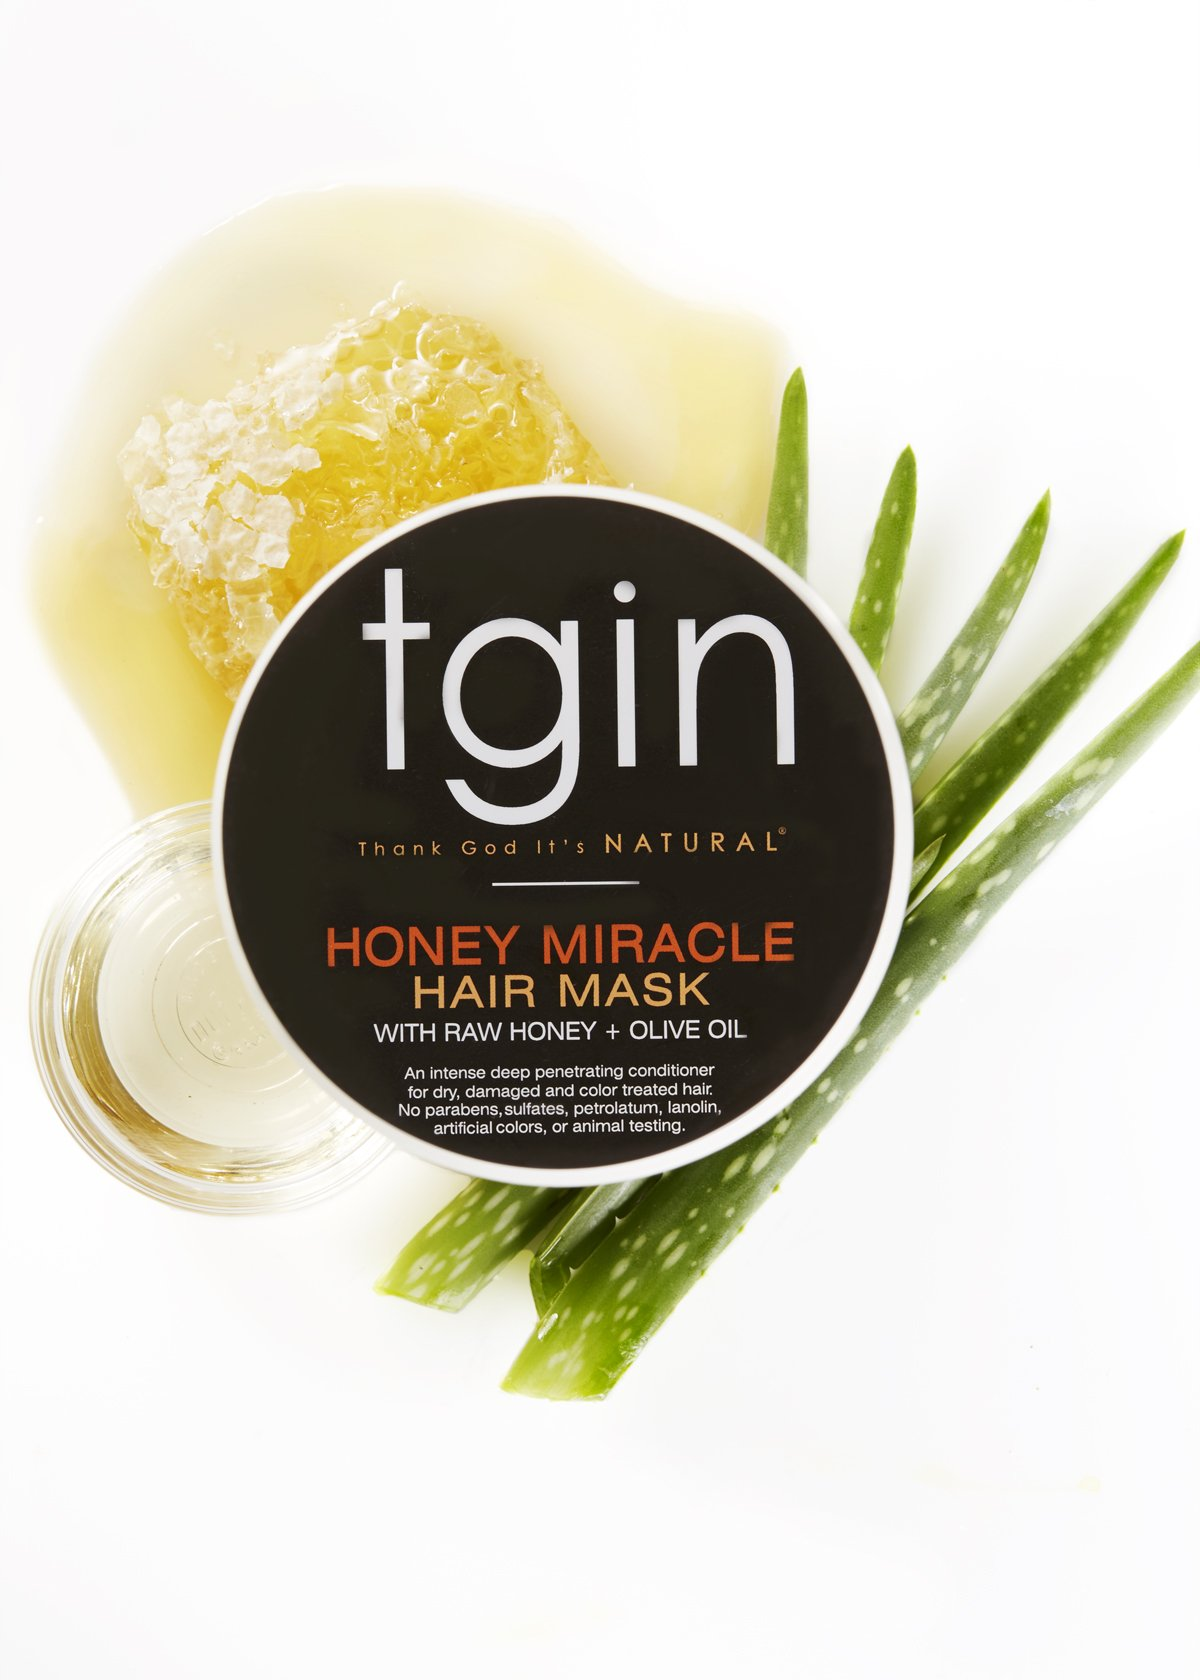 tgin Honey Miracle Hair Mask (12oz), Deep Conditioner for Natural Hair with Raw Honey & Olive Oil by Thank God It's Natural (Image #4)